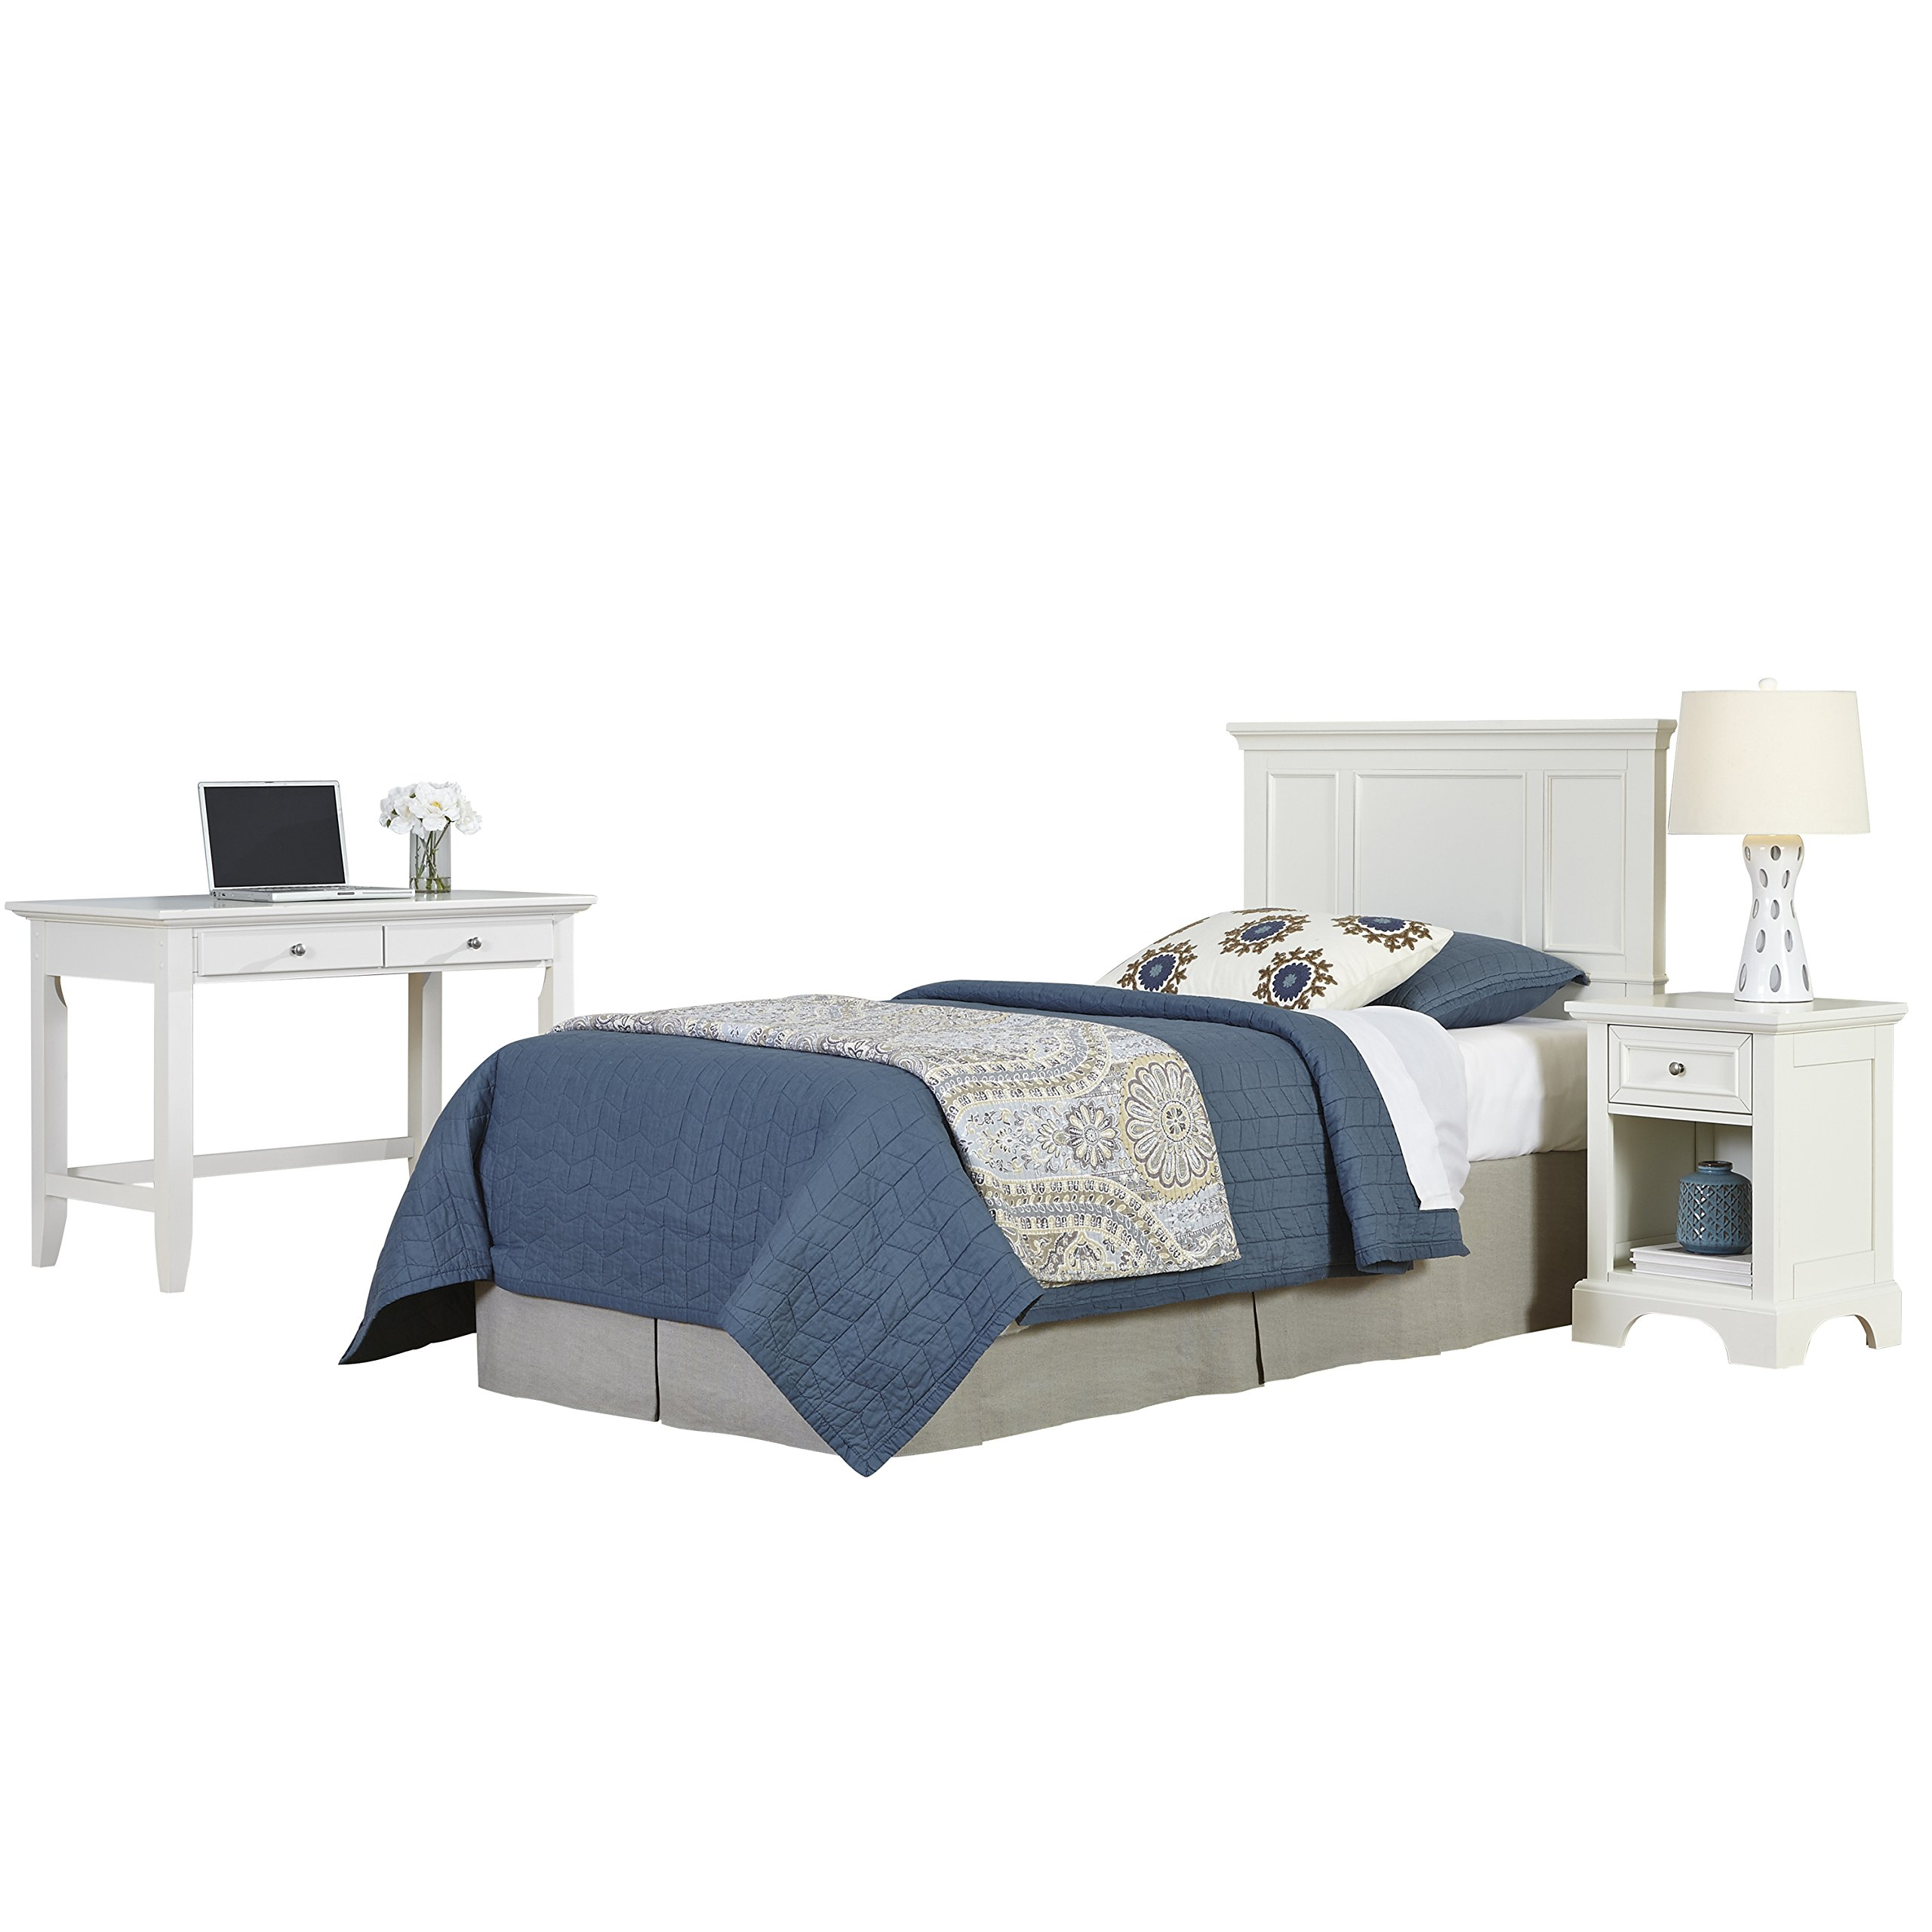 Home Styles 5530-4025 Naples Twin Headboard, Night Stand and Student Desk, White